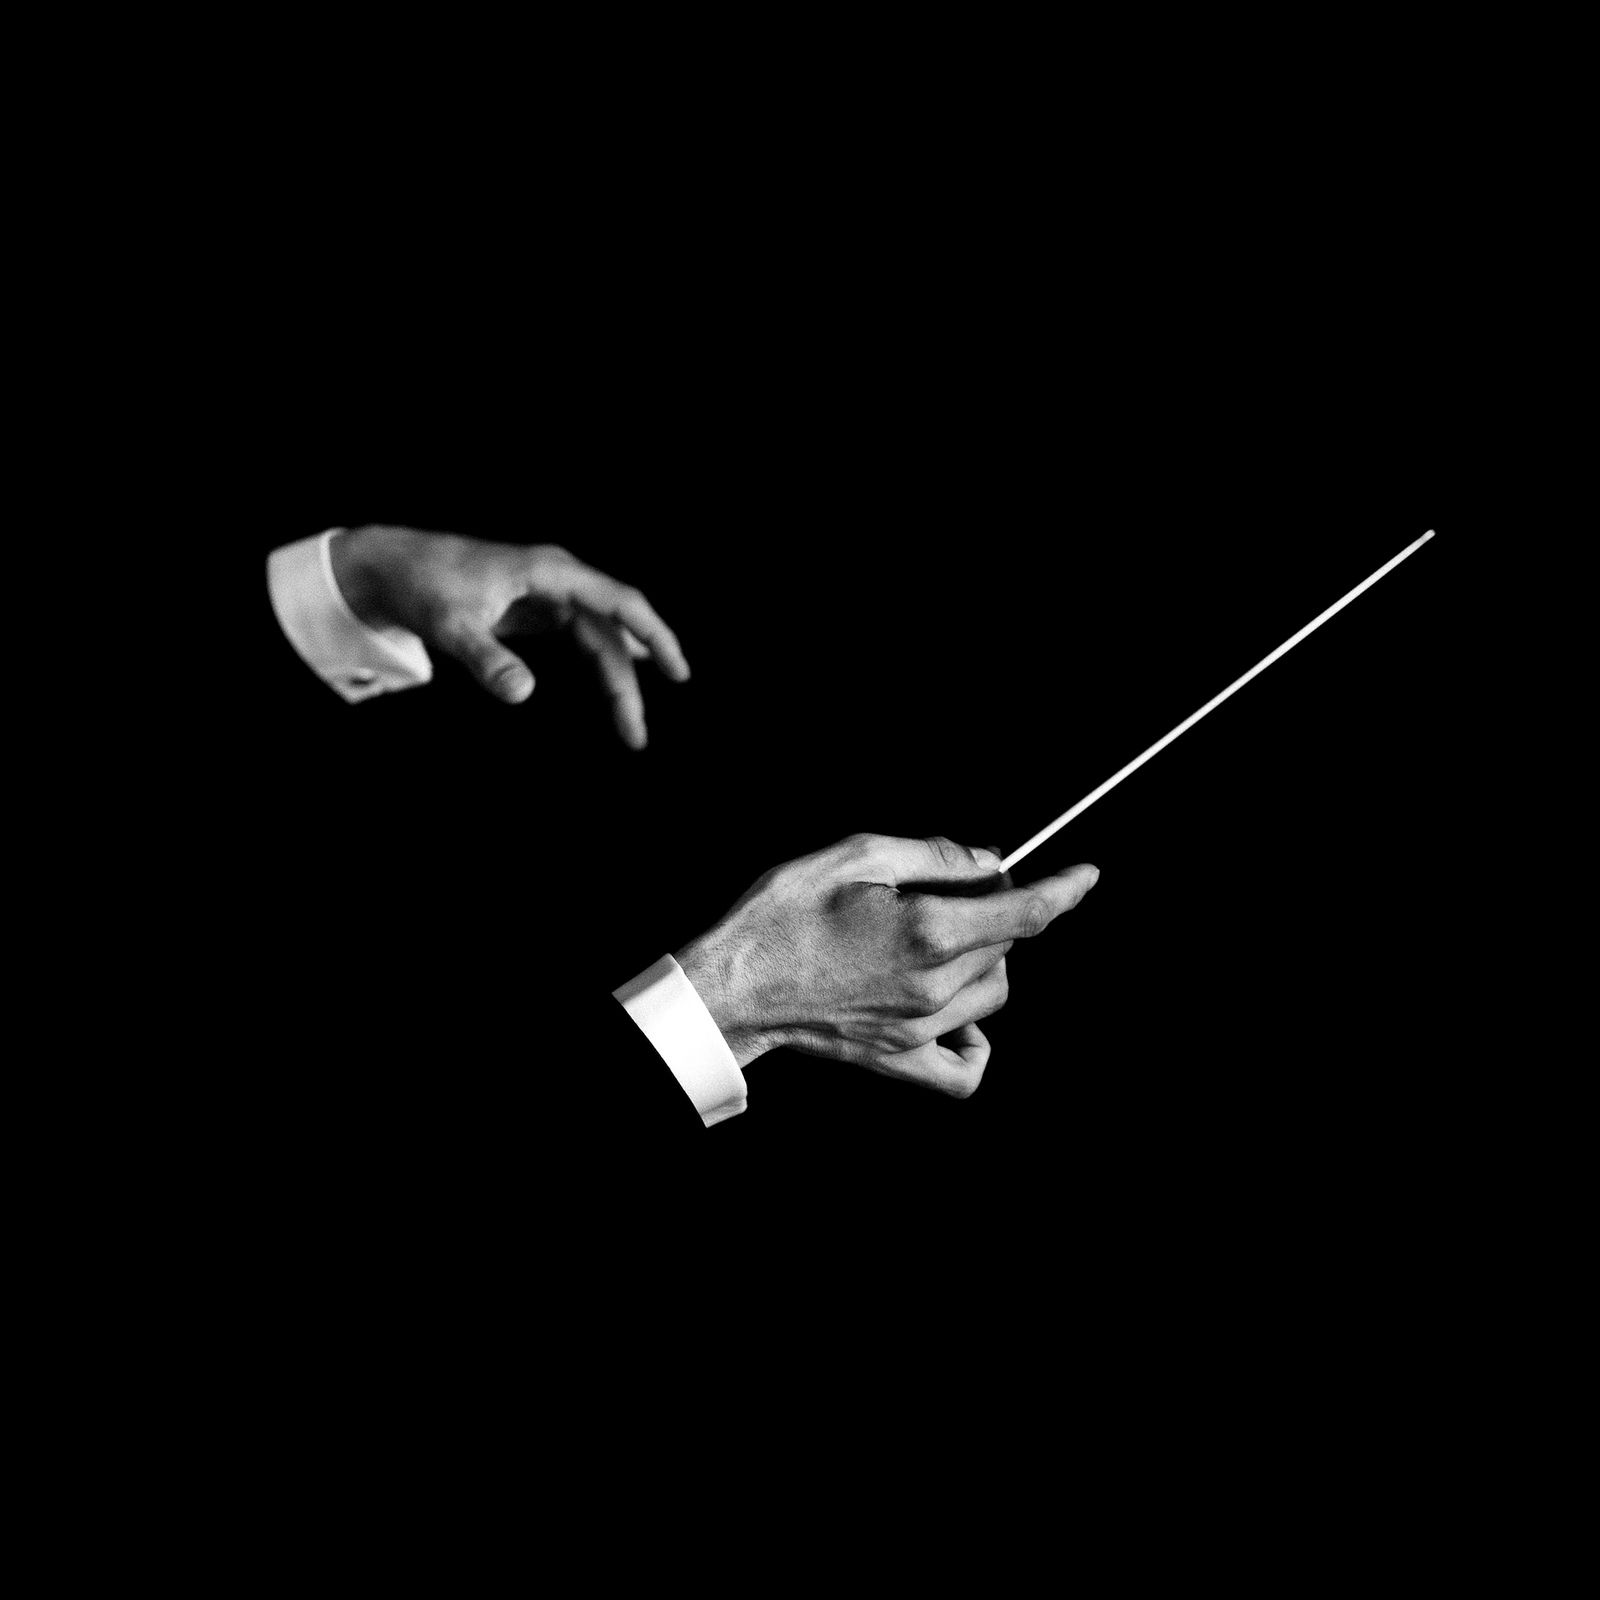 Maestro Black And White Photography Black And White White Photography